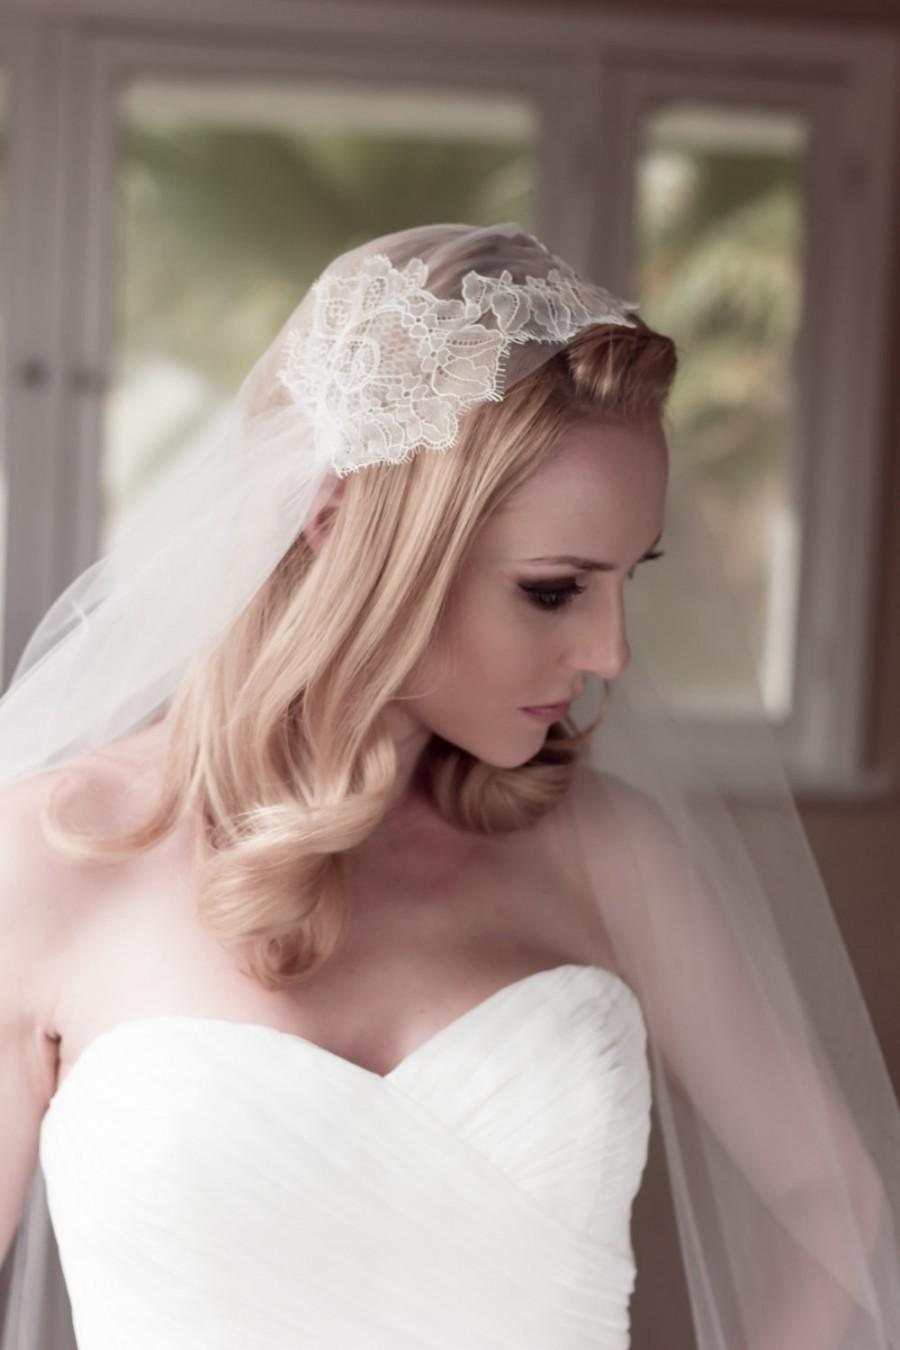 زفاف - Bridal Wedding Veil Chantilly Lace Juliet Bridal Cap, Ivory, Champagne, Fingertip, Cathedral, Waltz, Chapel, Style: Lillian #1210